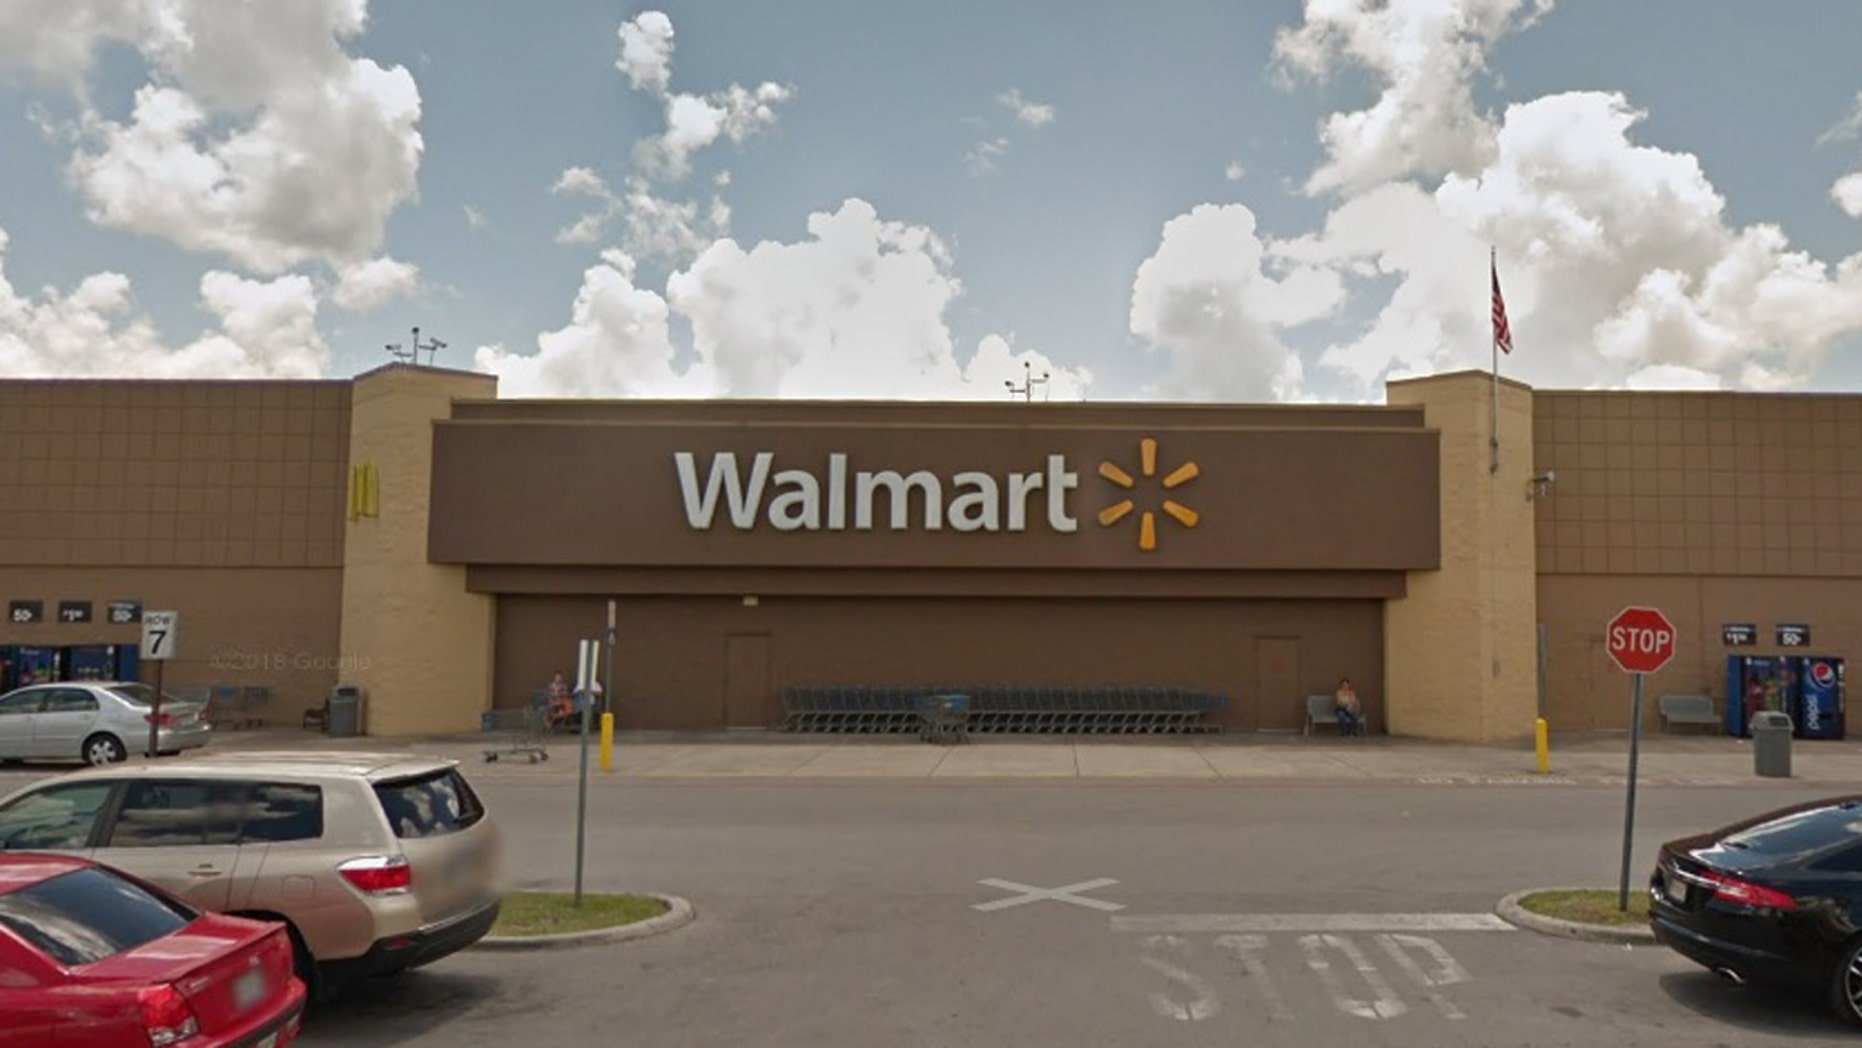 Woman shot to death by man at Ocala Walmart, shooter found wounded